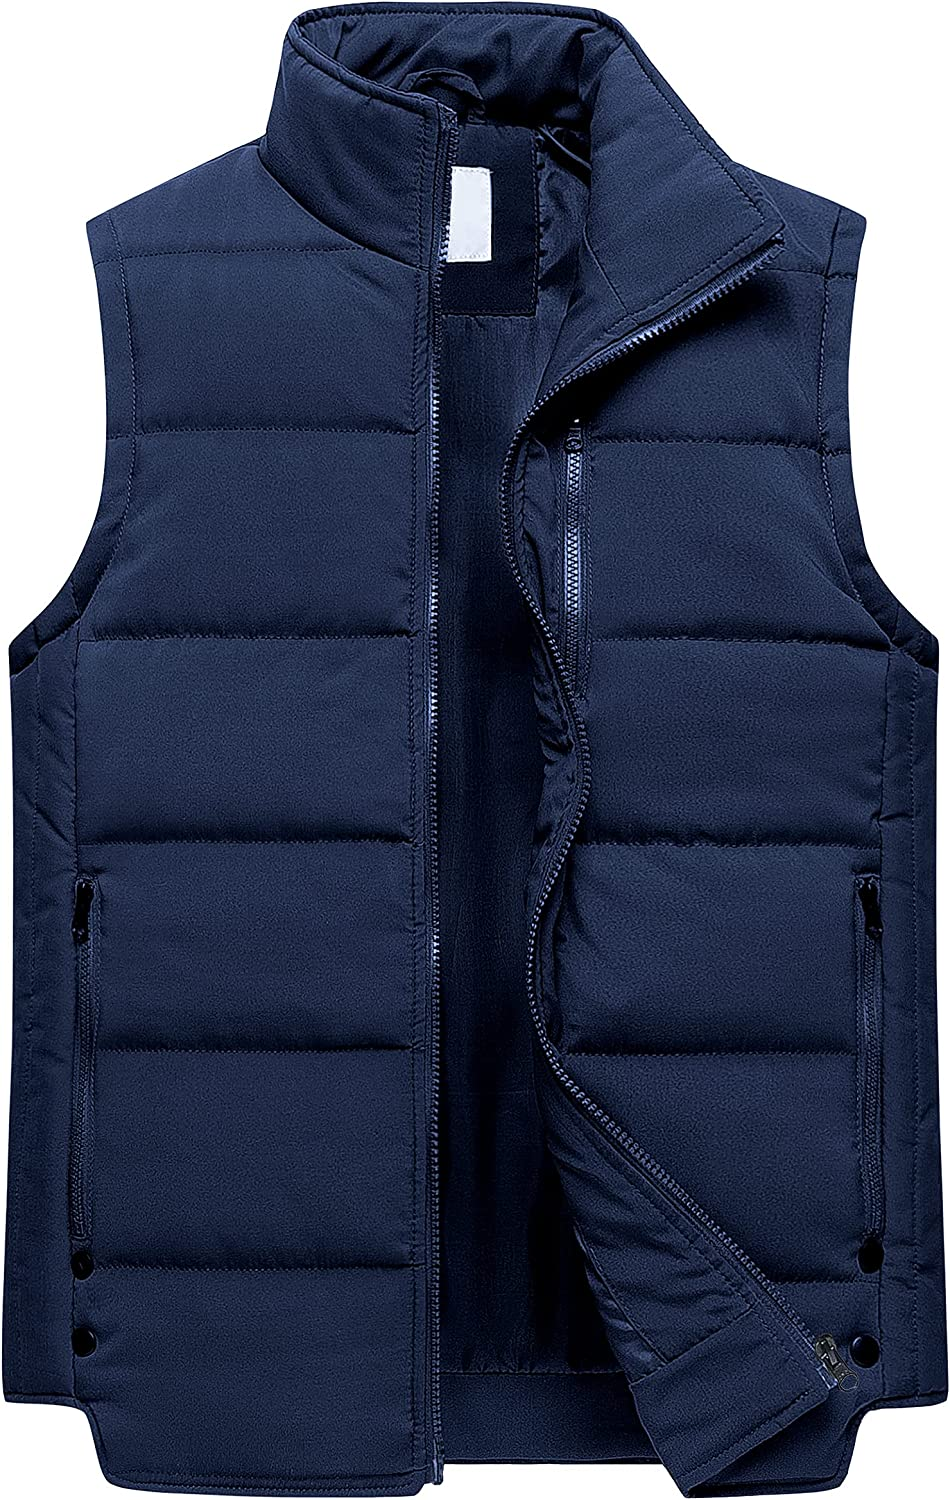 Women's Puffer Vest Casual Stand Collar Quilted Waistcoat Outdoor Padded Ski Vest